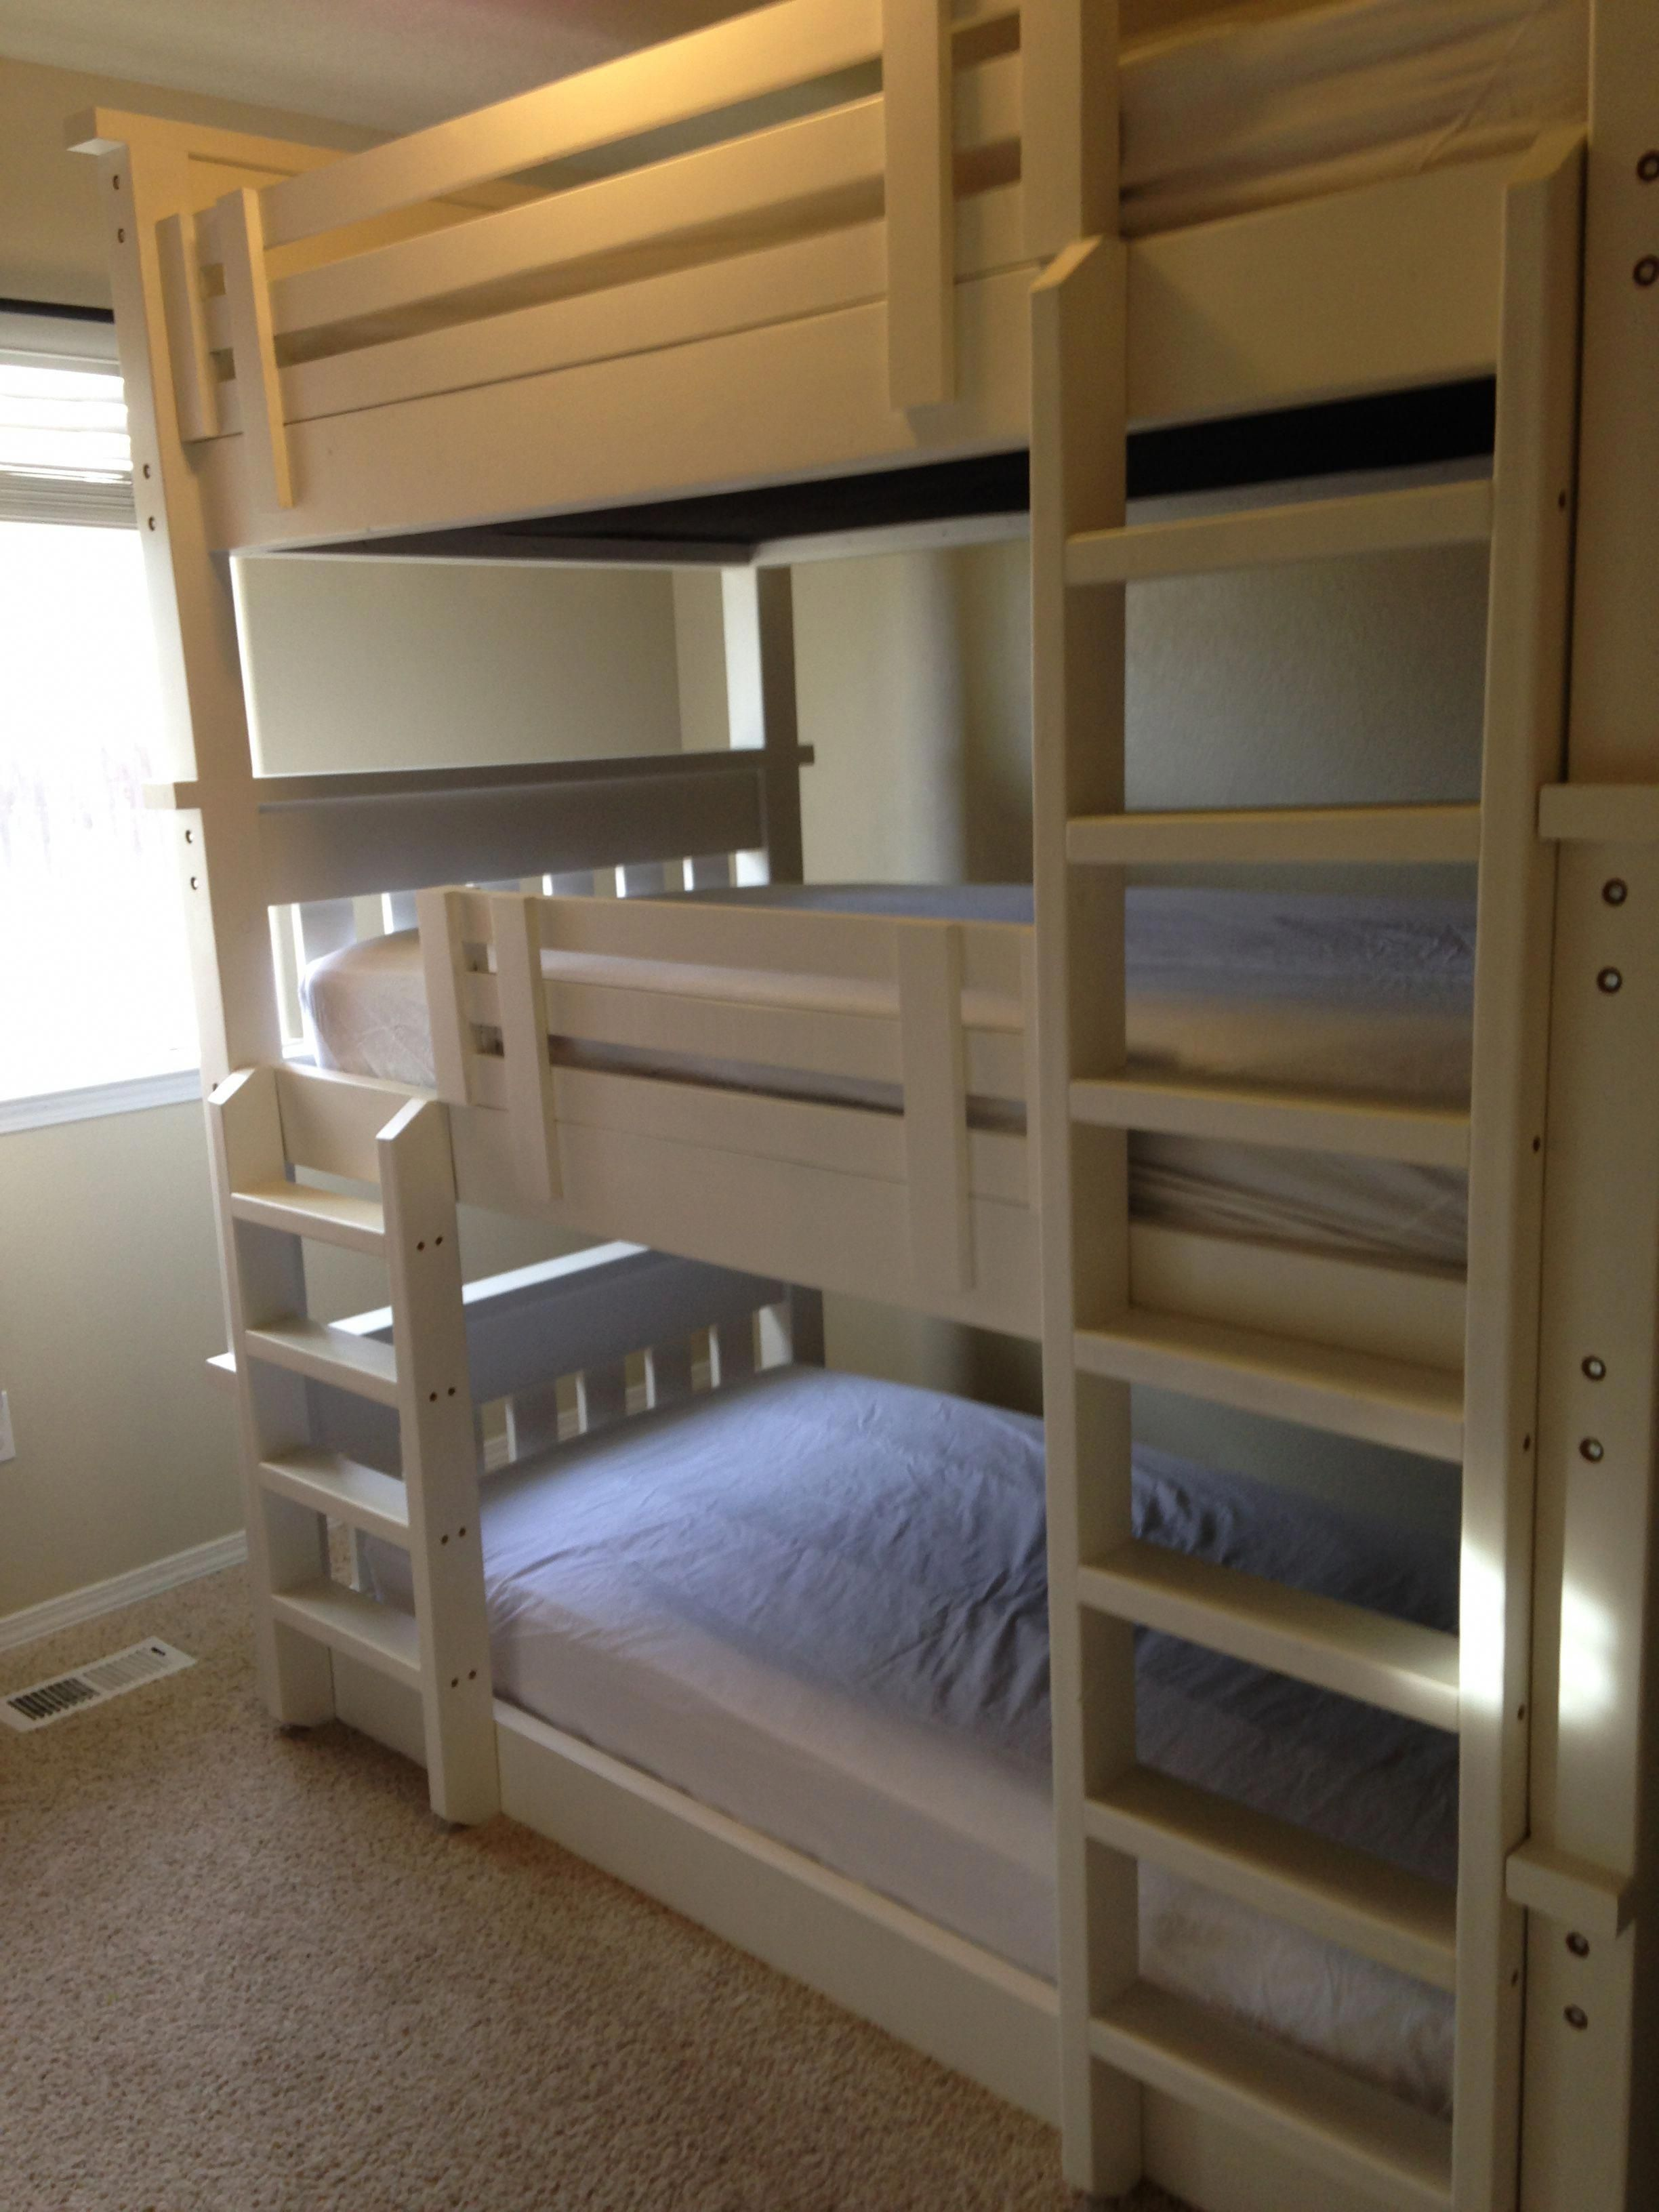 Loft bed with desk jordan's furniture  Simple Bunk Bed Triple Bunk  Do It Yourself Home Projects from Ana